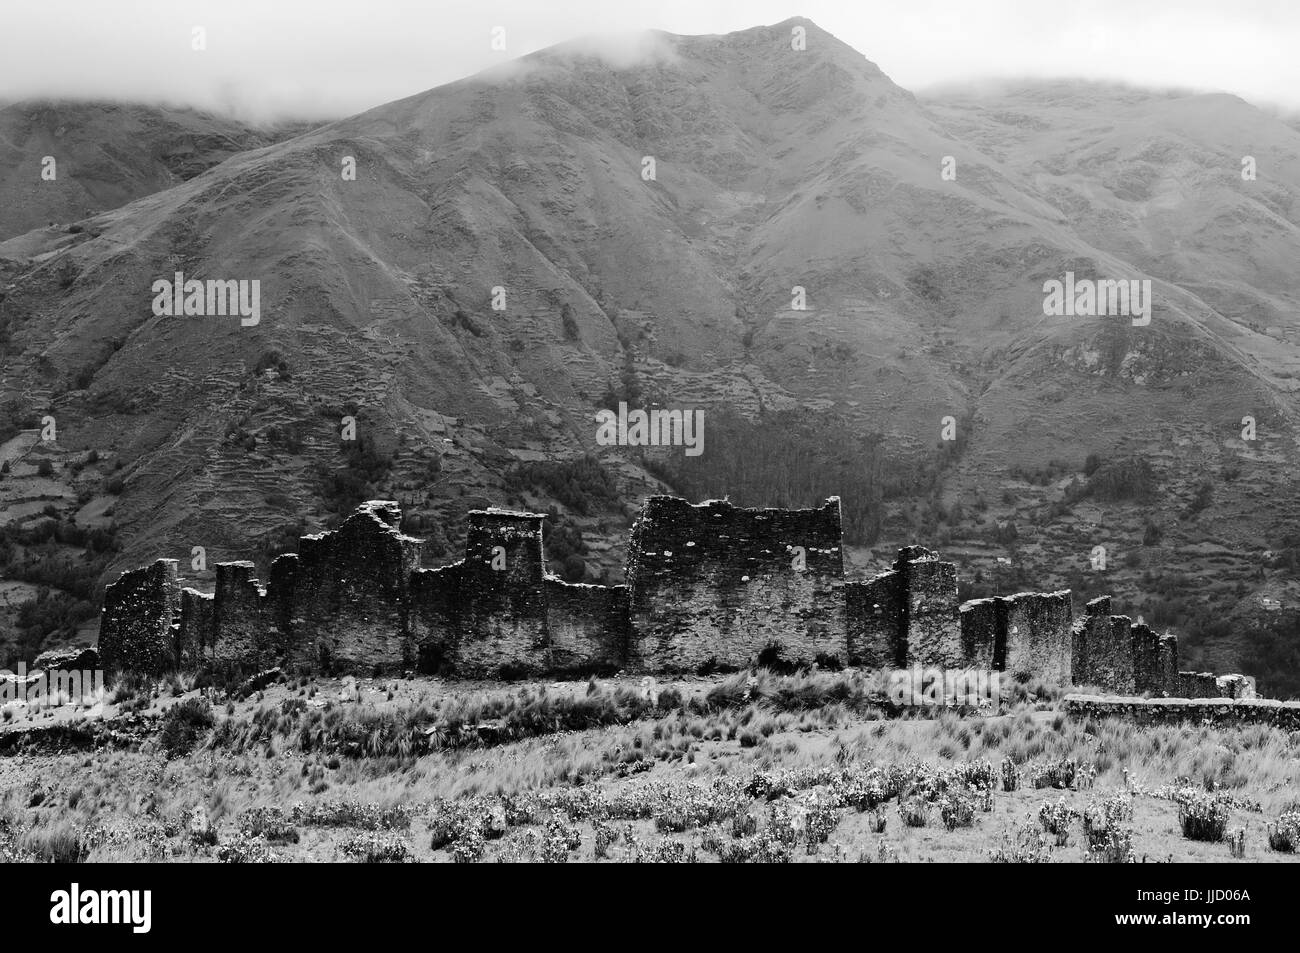 South America - Piruro ruins near Tantamayo. Tantamayo was capital of the preColumbian Yarowilca culture, one of - Stock Image